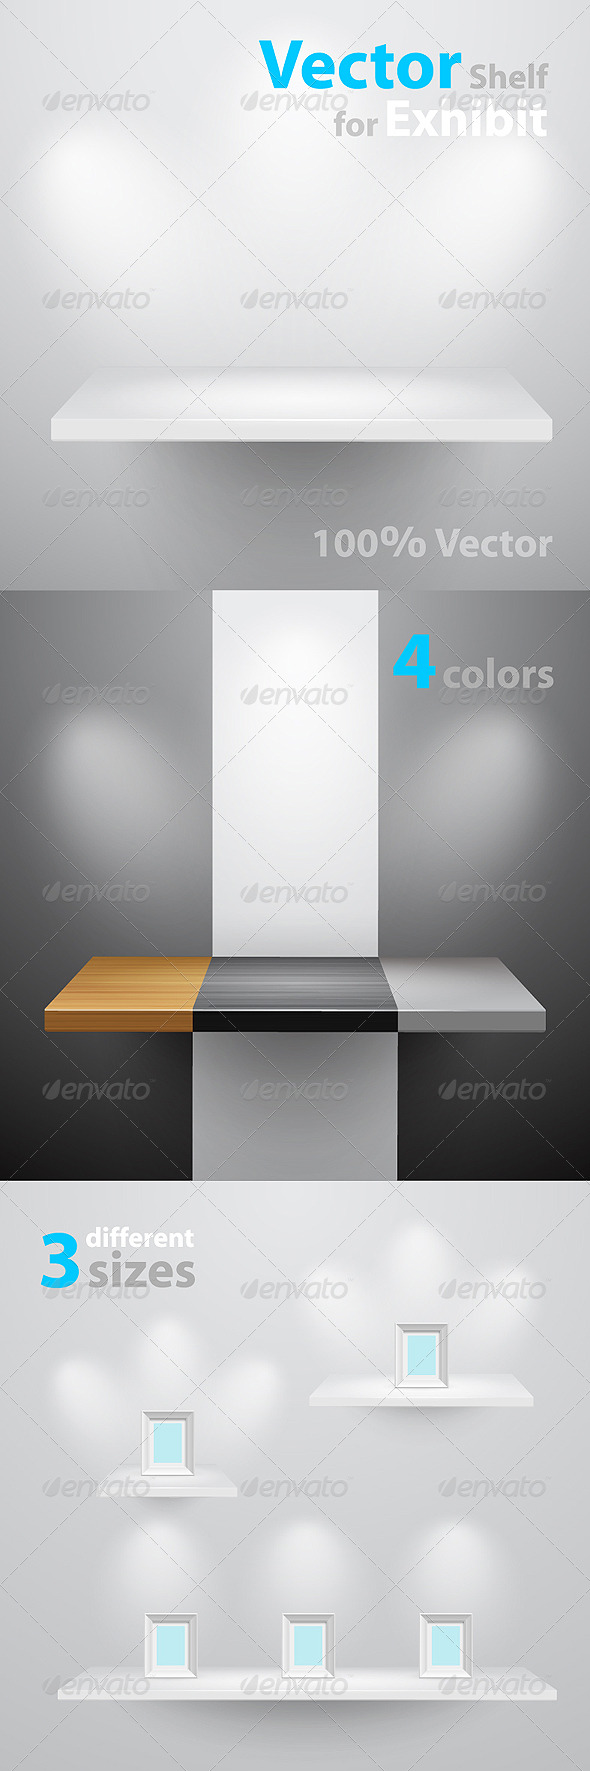 Graphic River Vector shelf for exhibition Vectors -  Objects  Man-made objects 236313